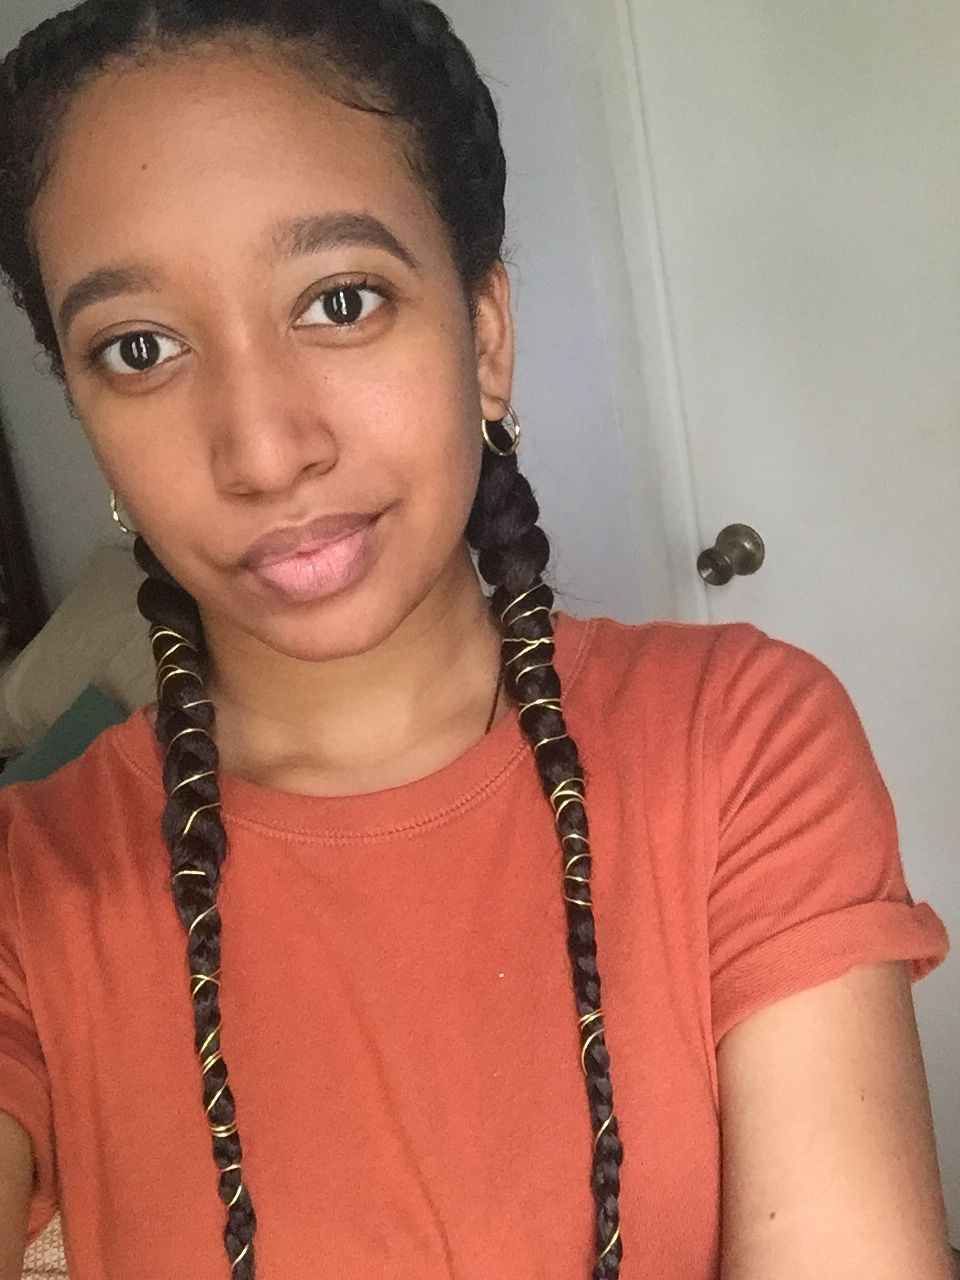 29+ Braids with gold string trends